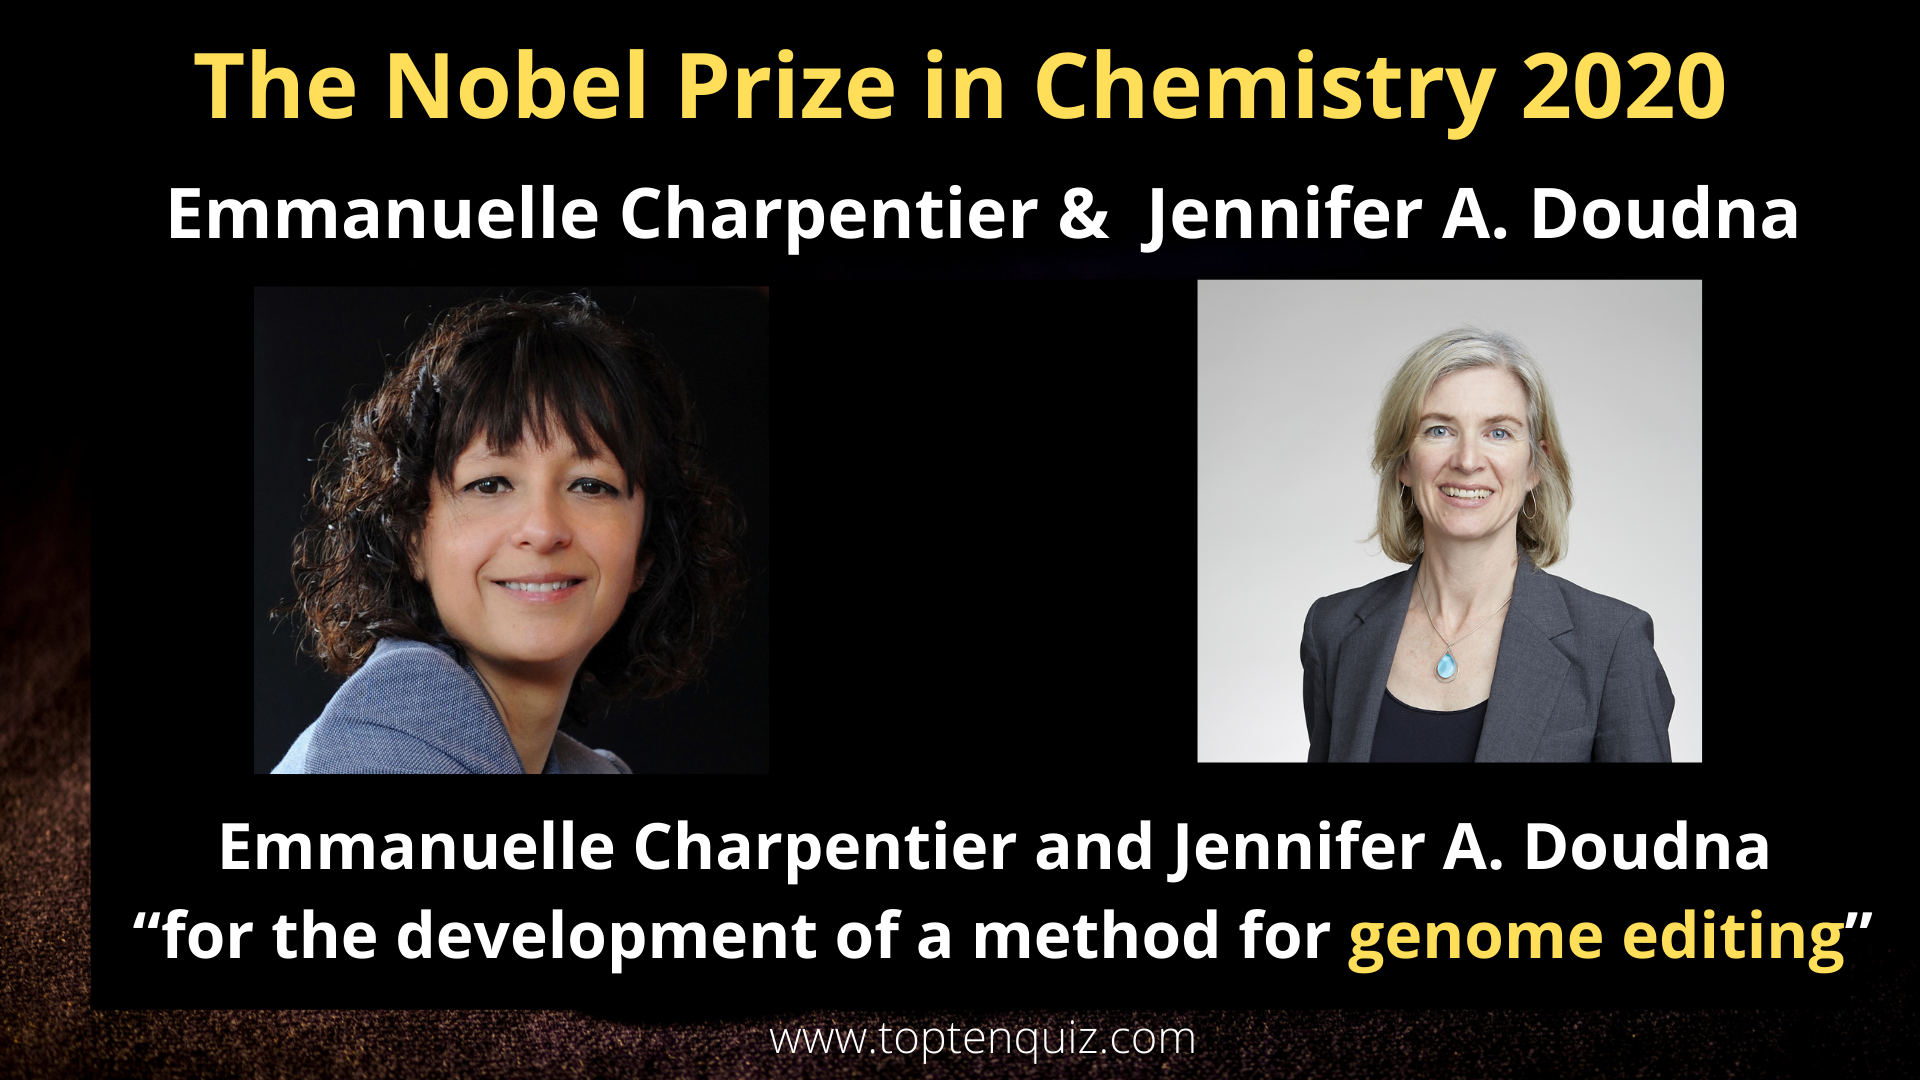 The Nobel Prize in Chemistry 2020- Emmanuelle Charpentier &  Jennifer A. Doudna